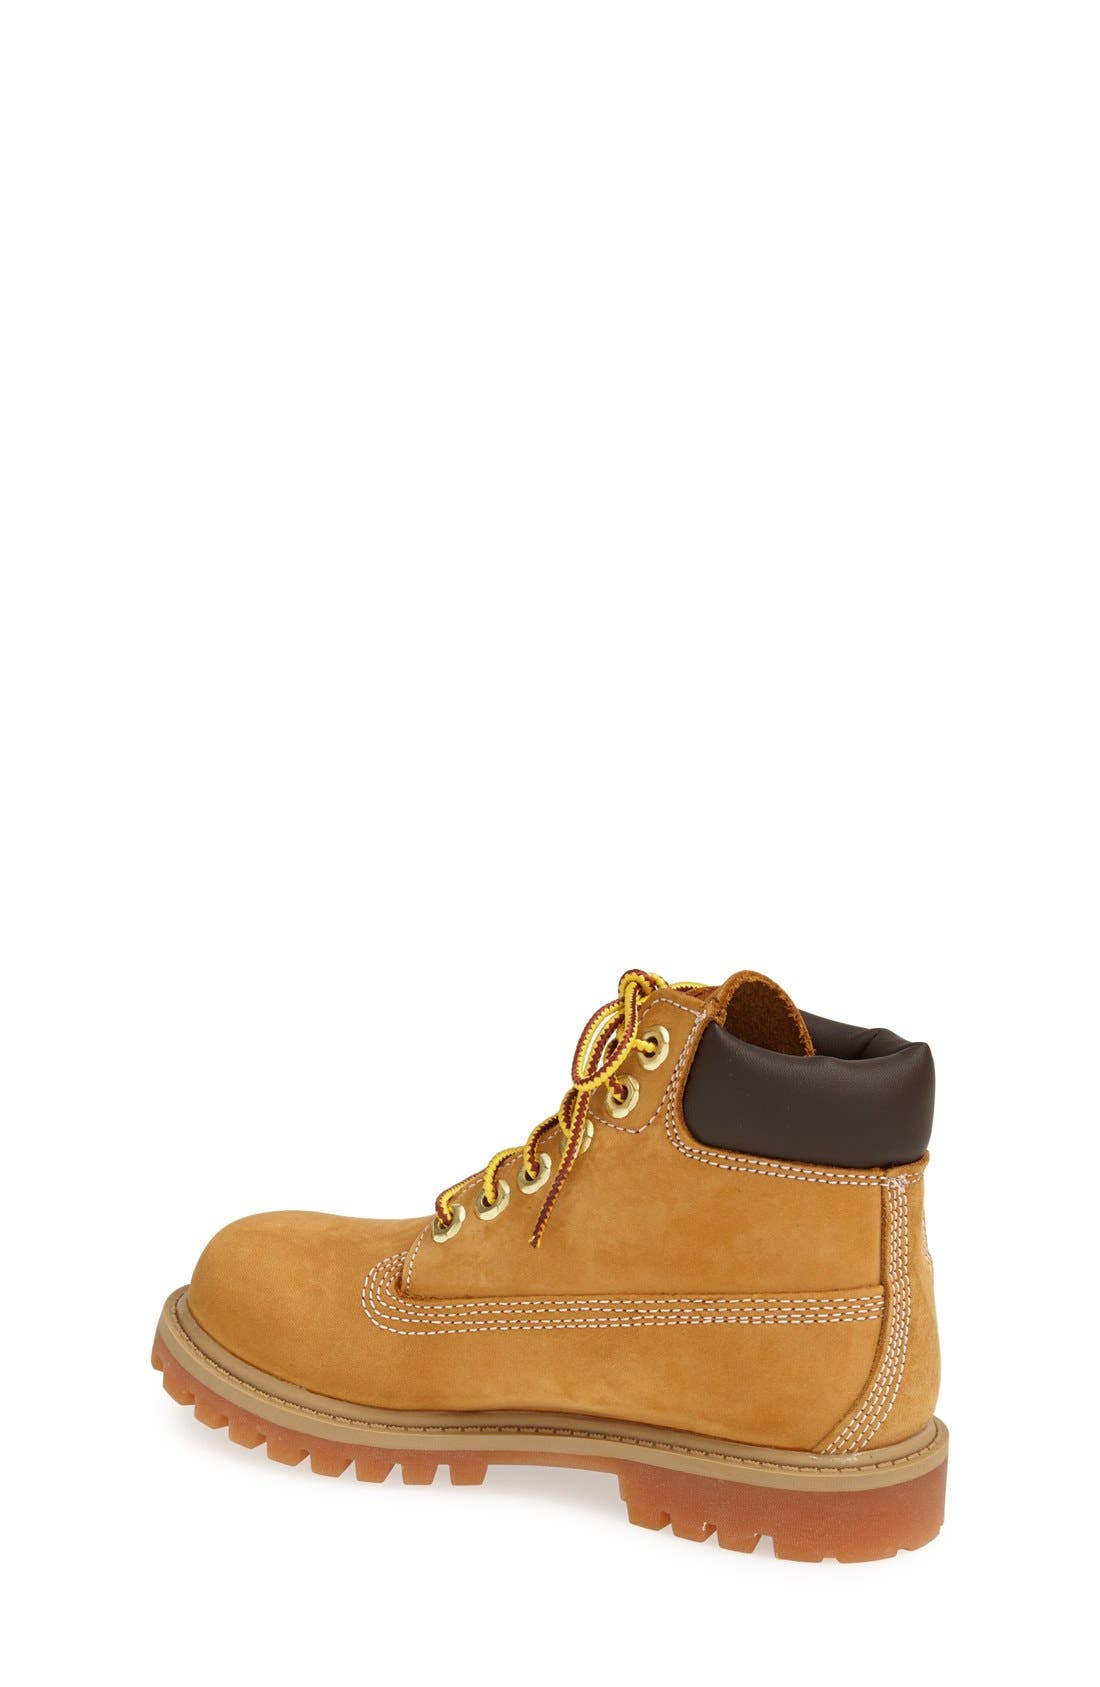 '6 Inch Premium' Waterproof Boot,                             Alternate thumbnail 2, color,                             Wheat Nubuck